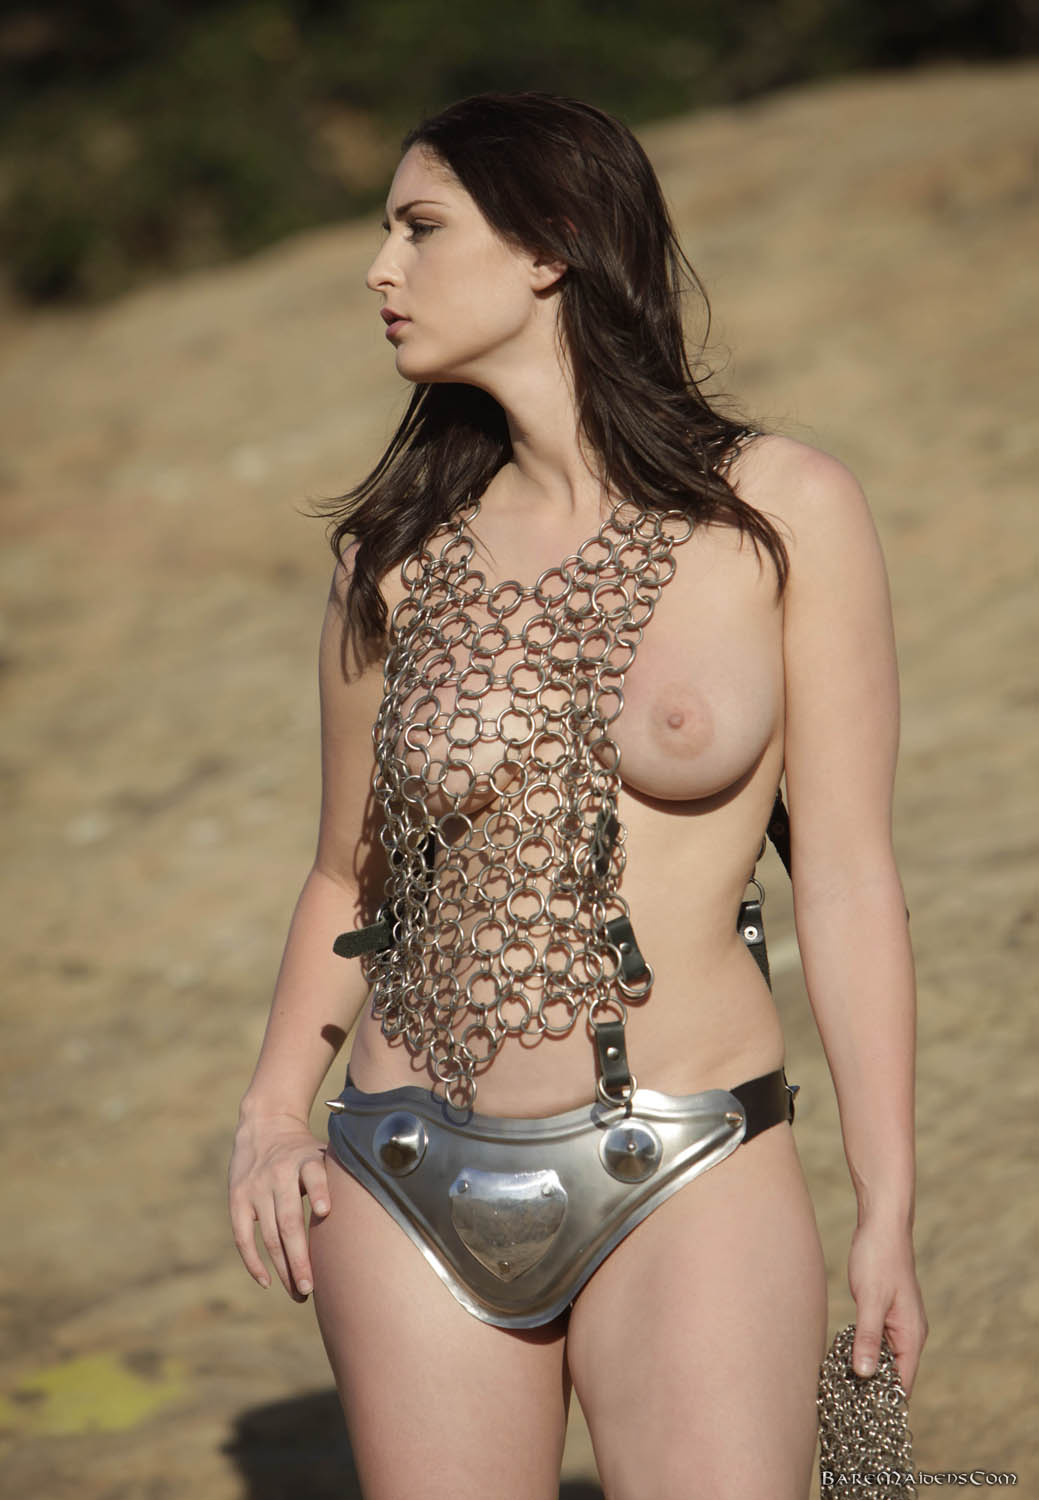 Sexy naked girl armor video porn cuties